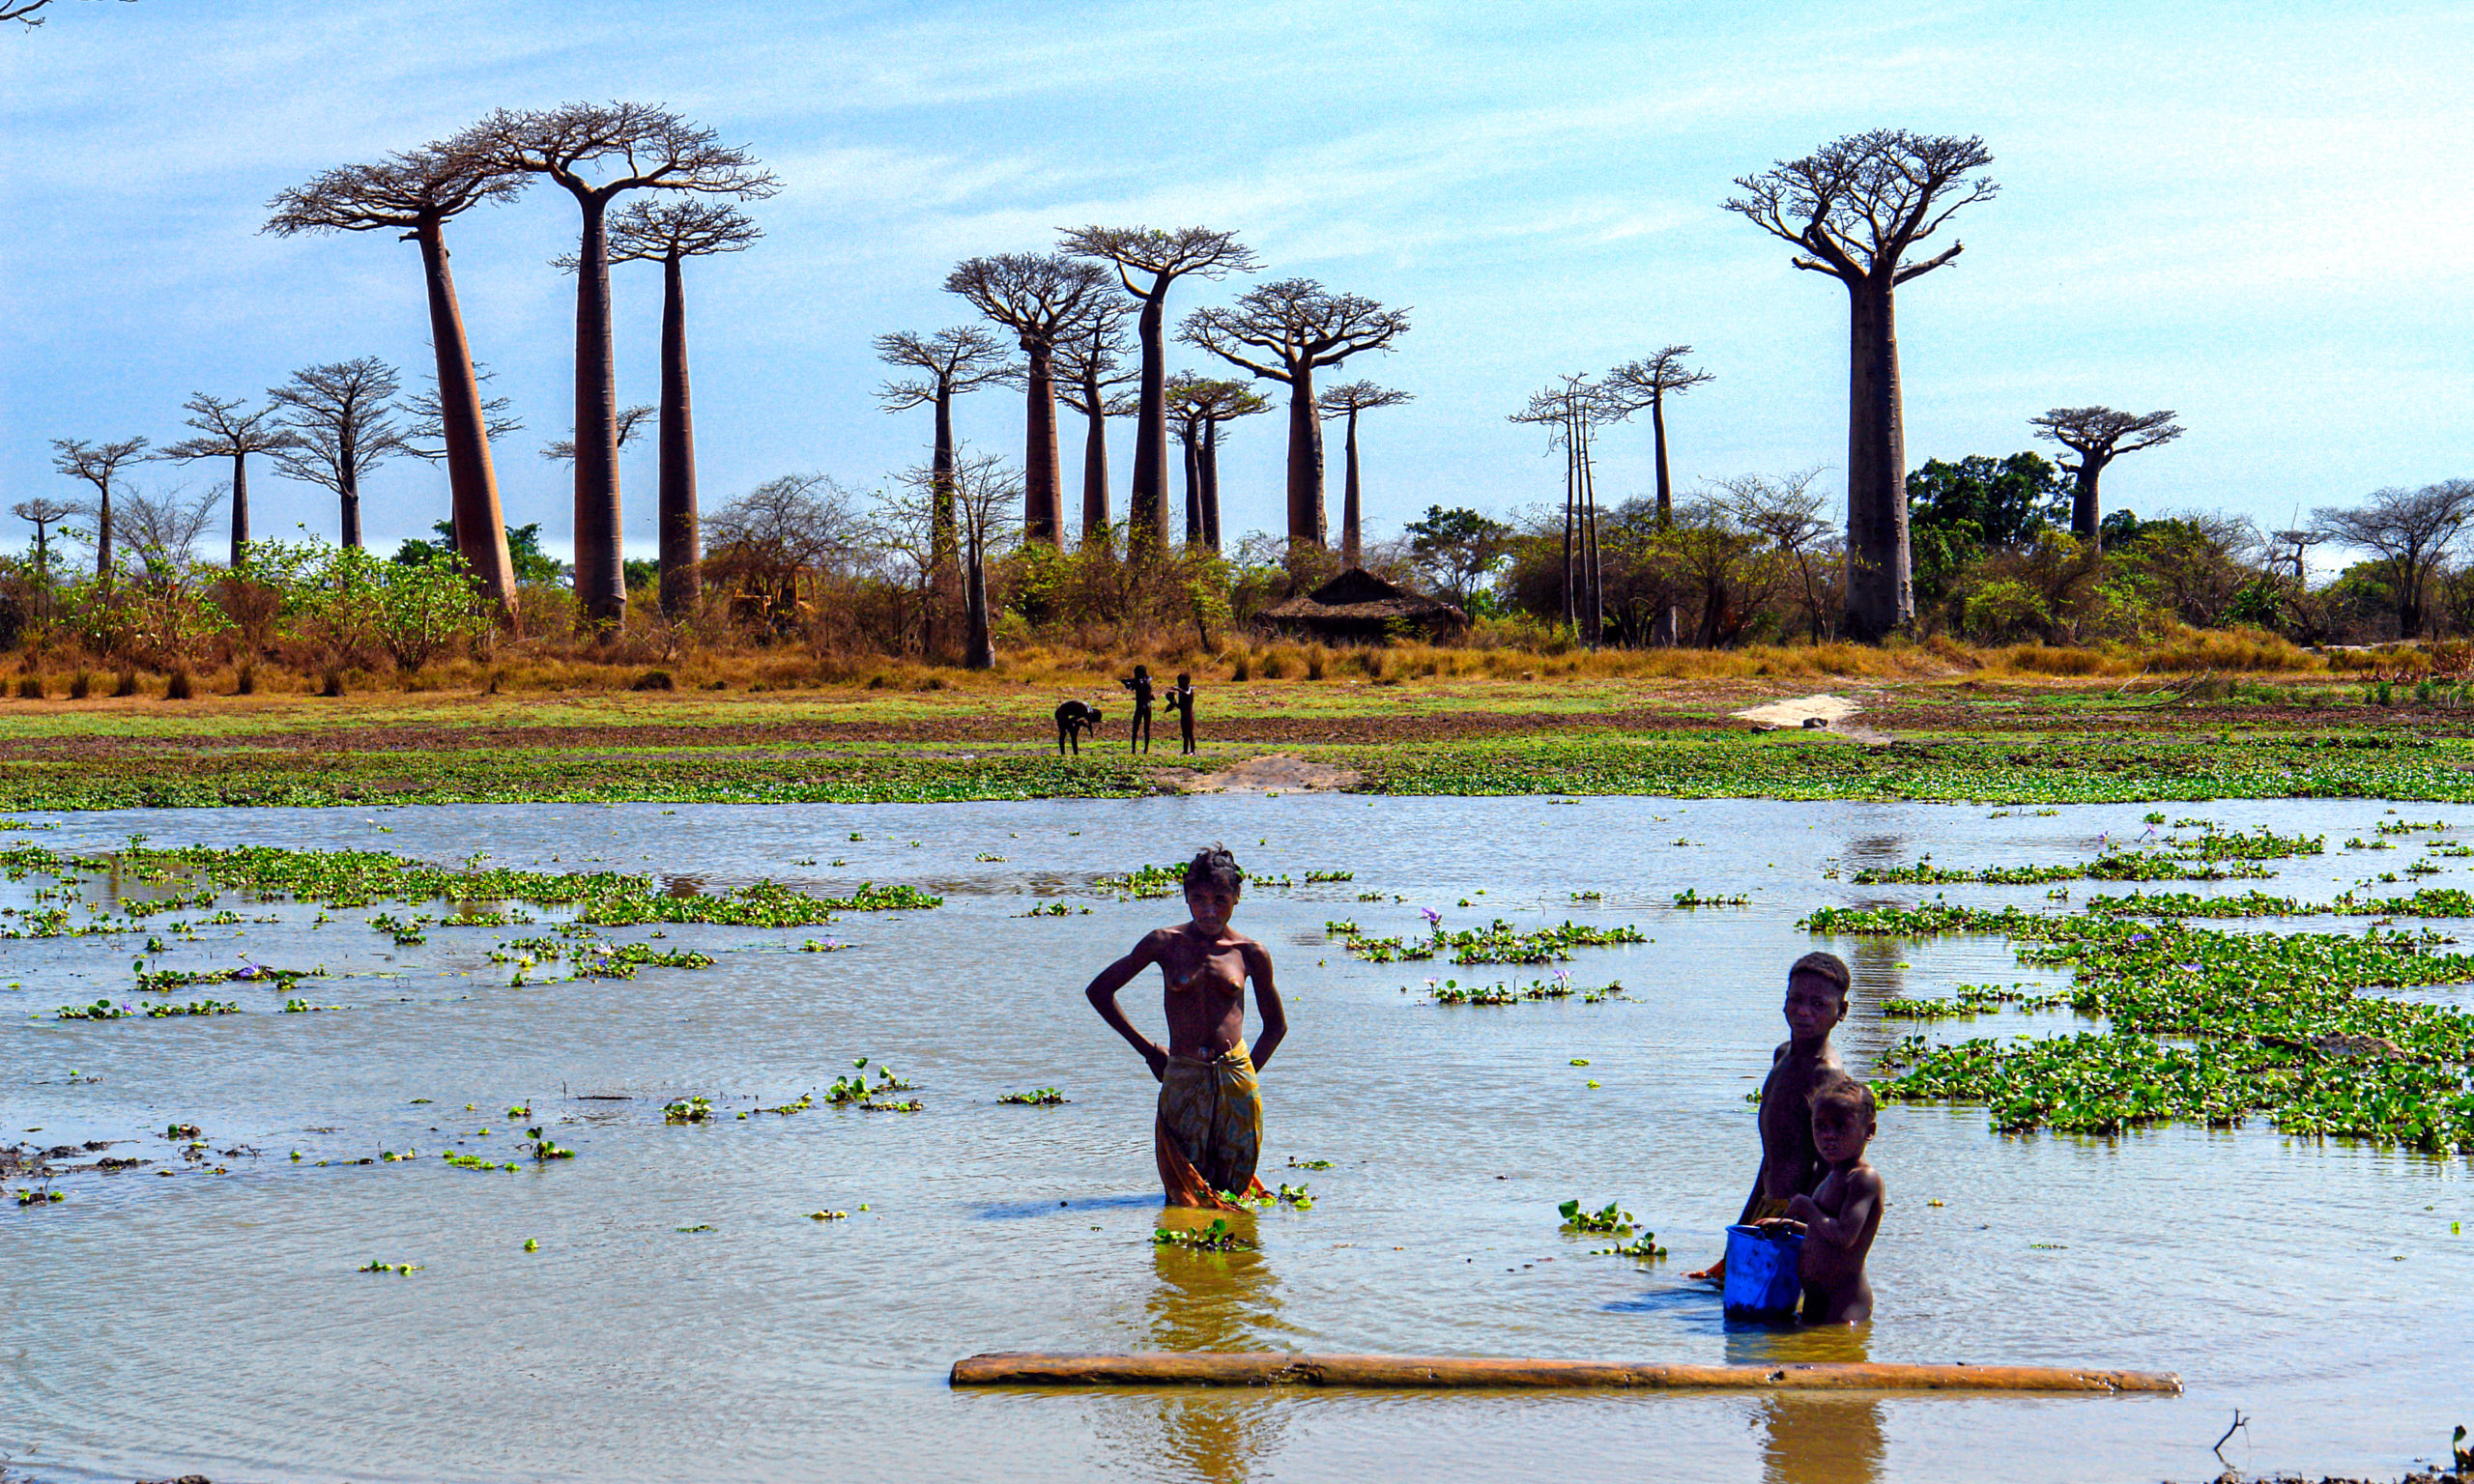 Madagascar-CC BY-NC Jacques BOUBY